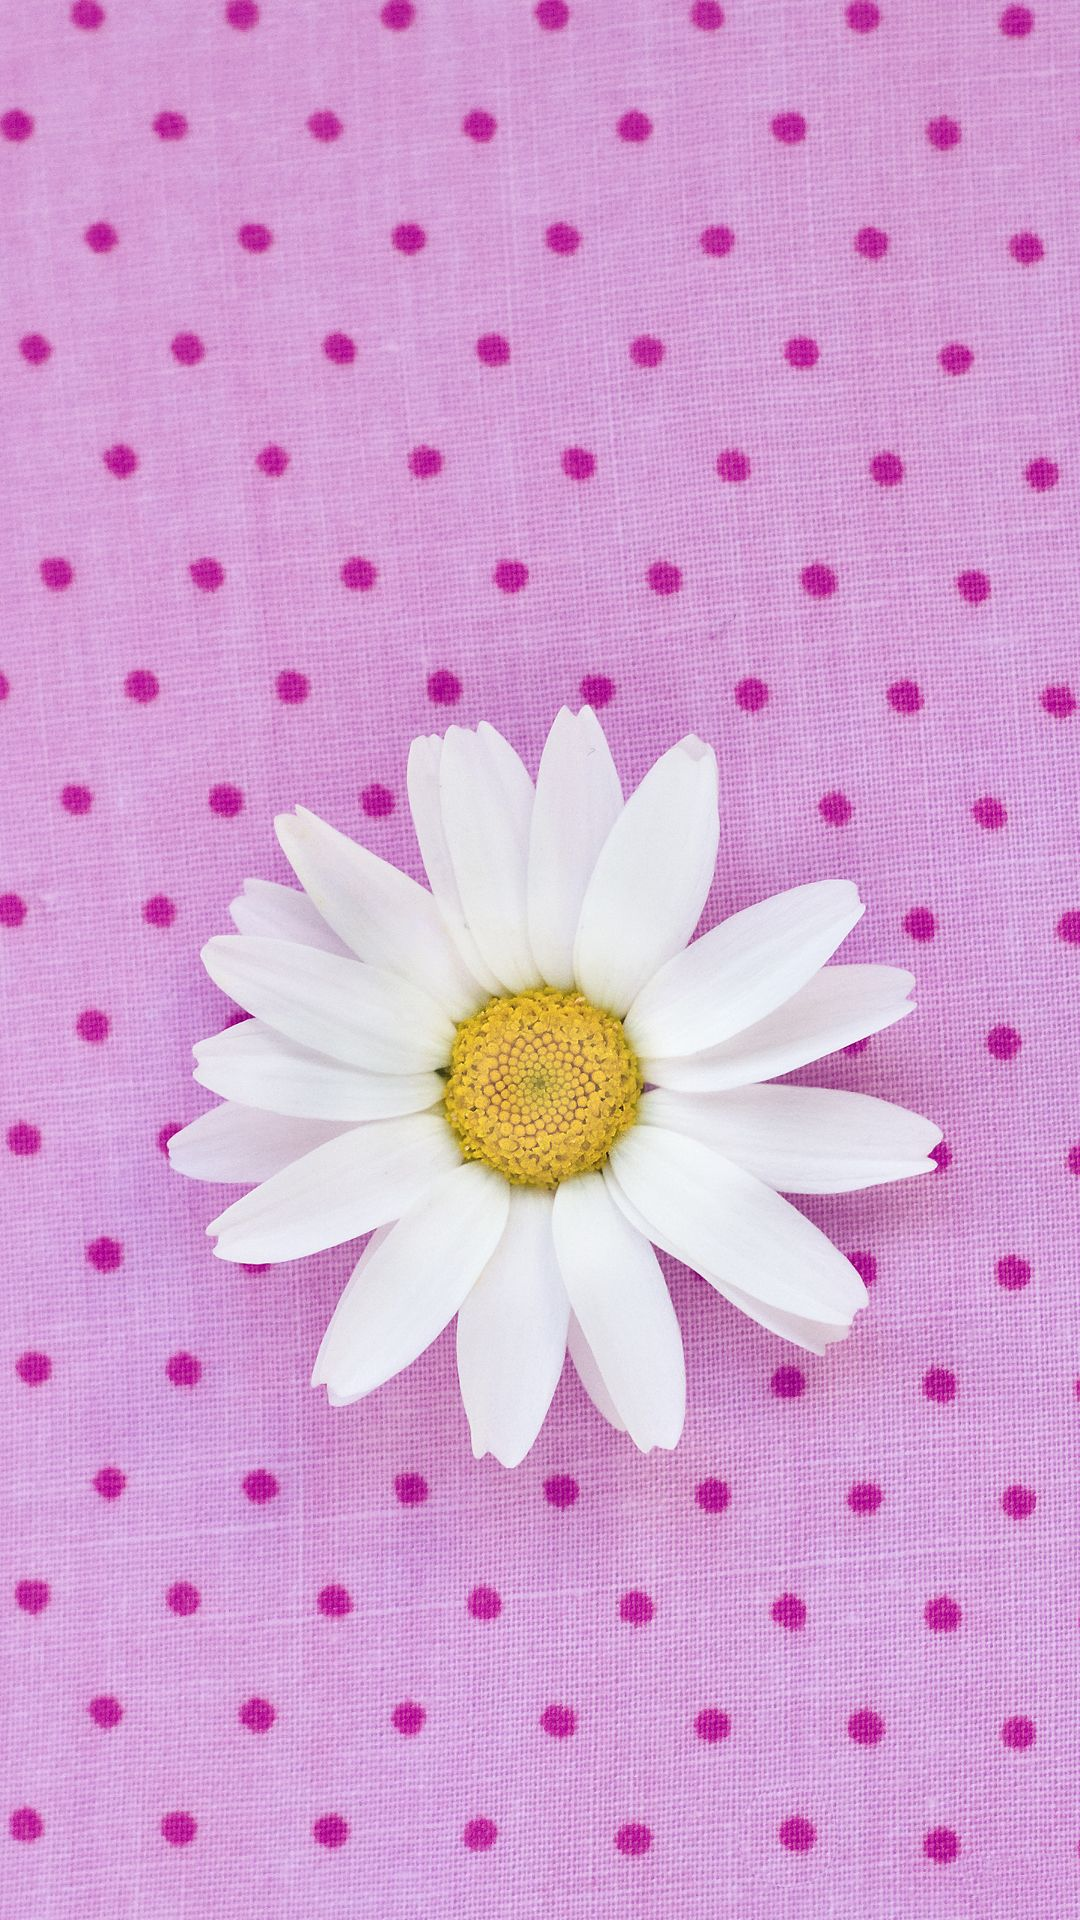 iphone 6 pink daisy wallpaper - bing images | pink wallpaper! in